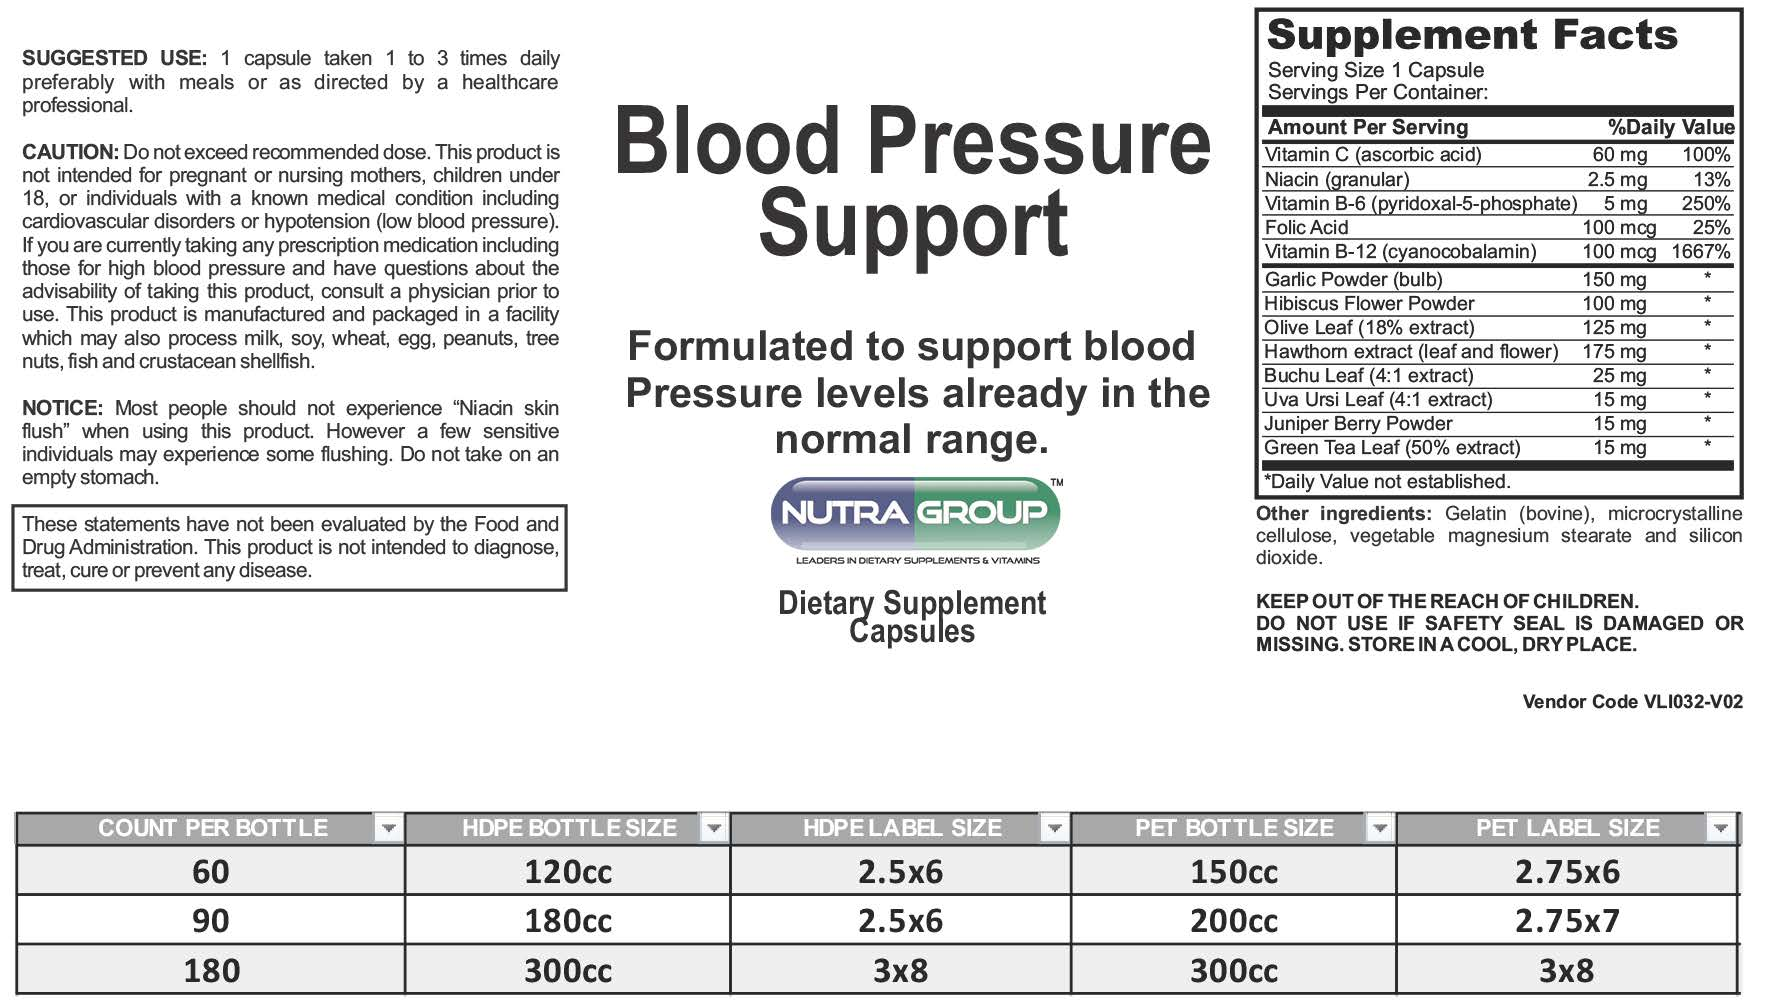 Private label Blood Pressure supplements